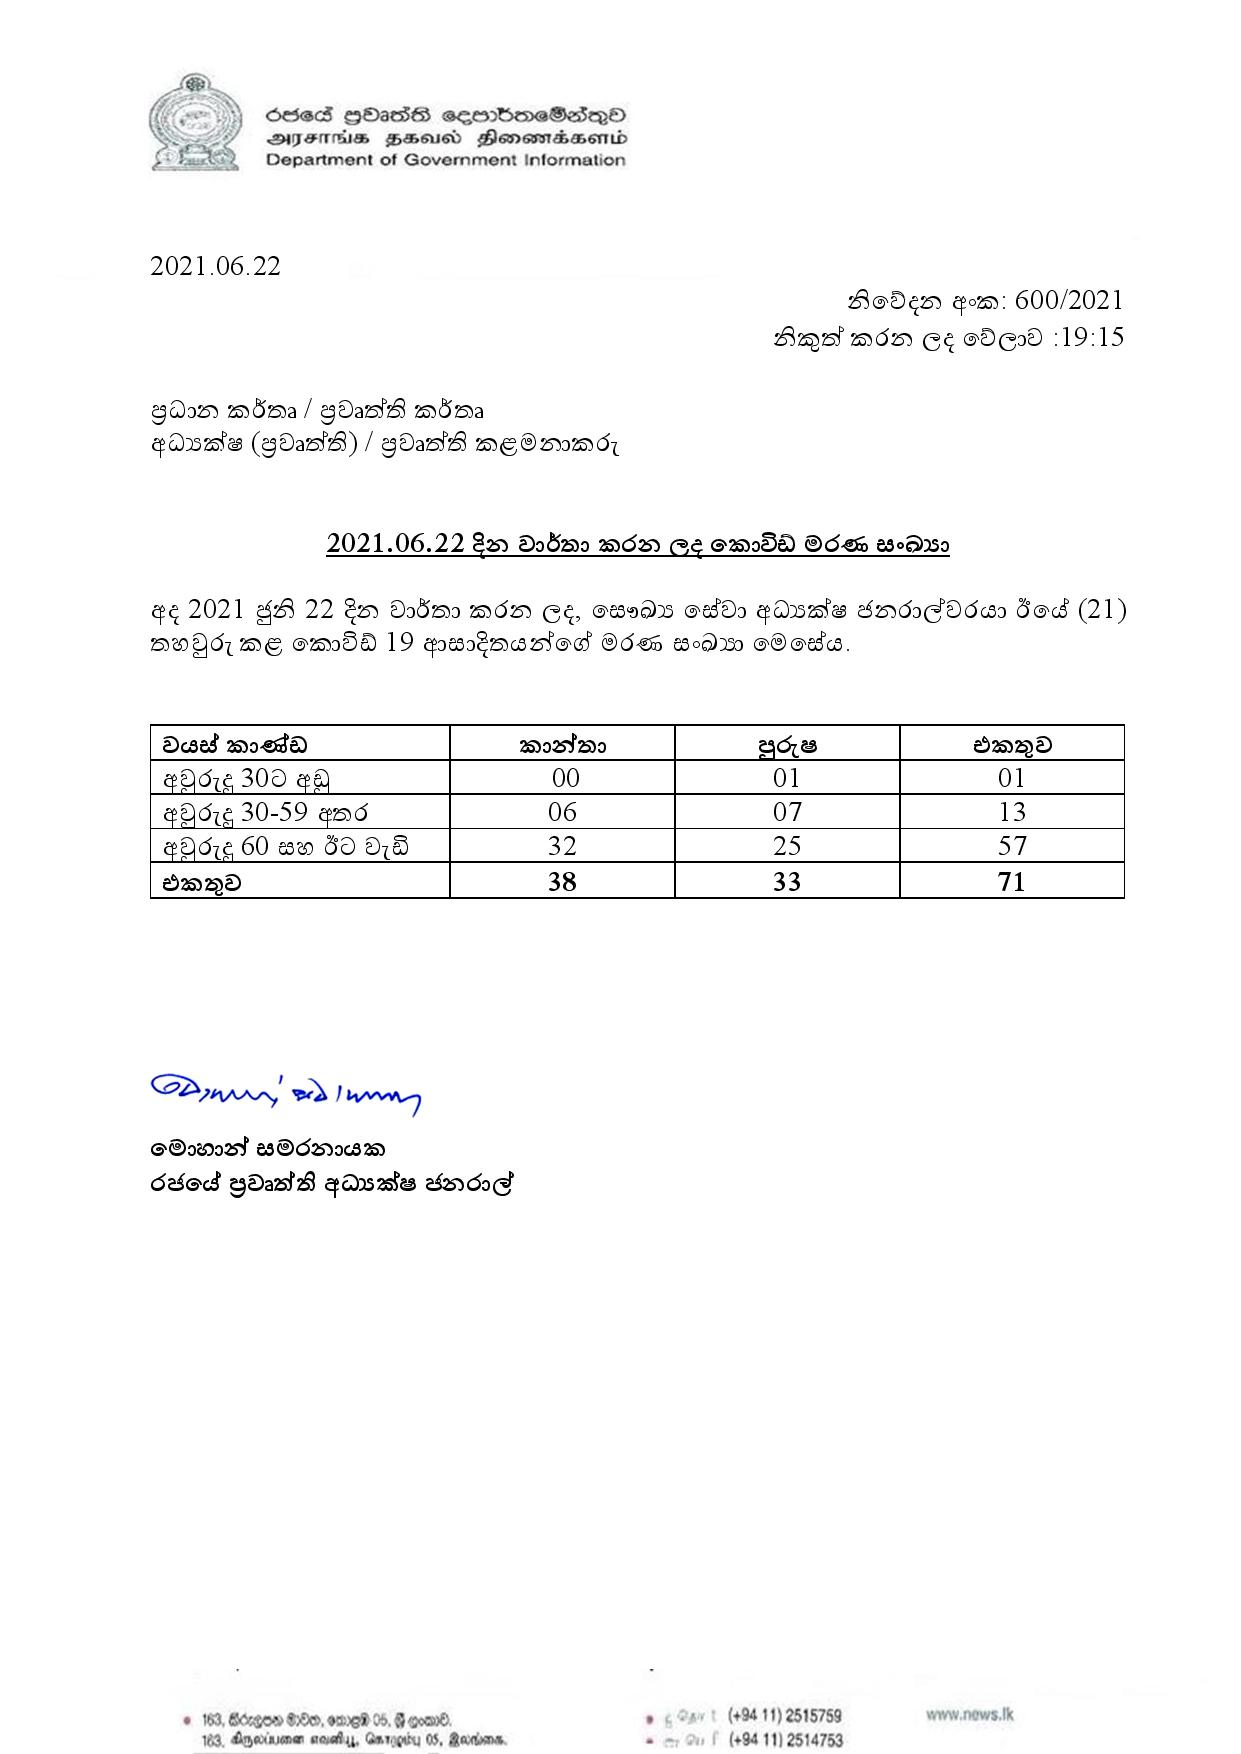 covid patients and deaths in Srilanka June 22